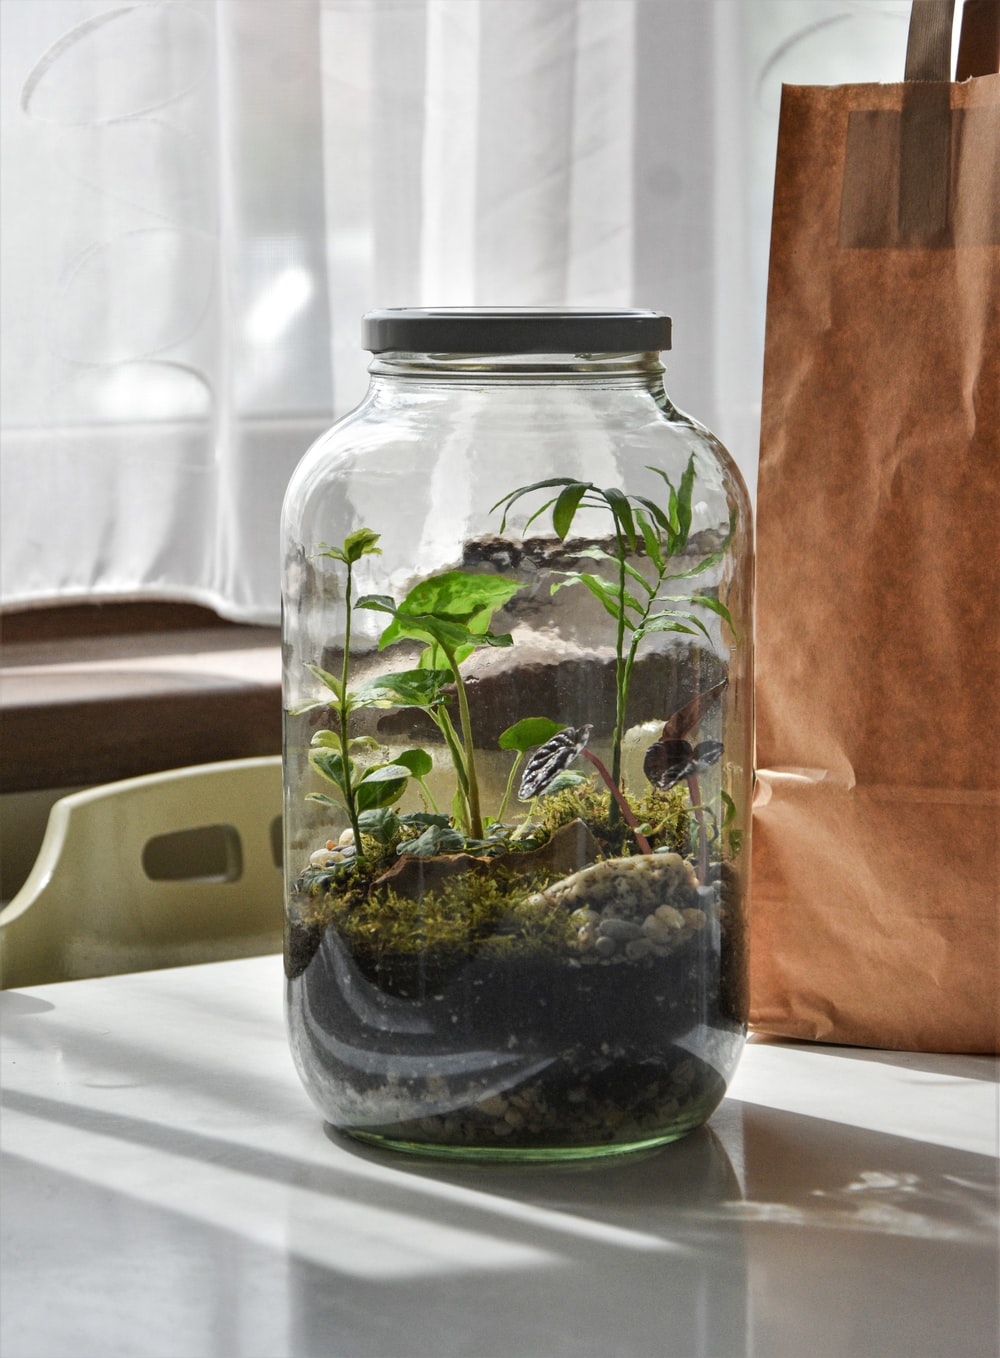 green plant in clear glass jar